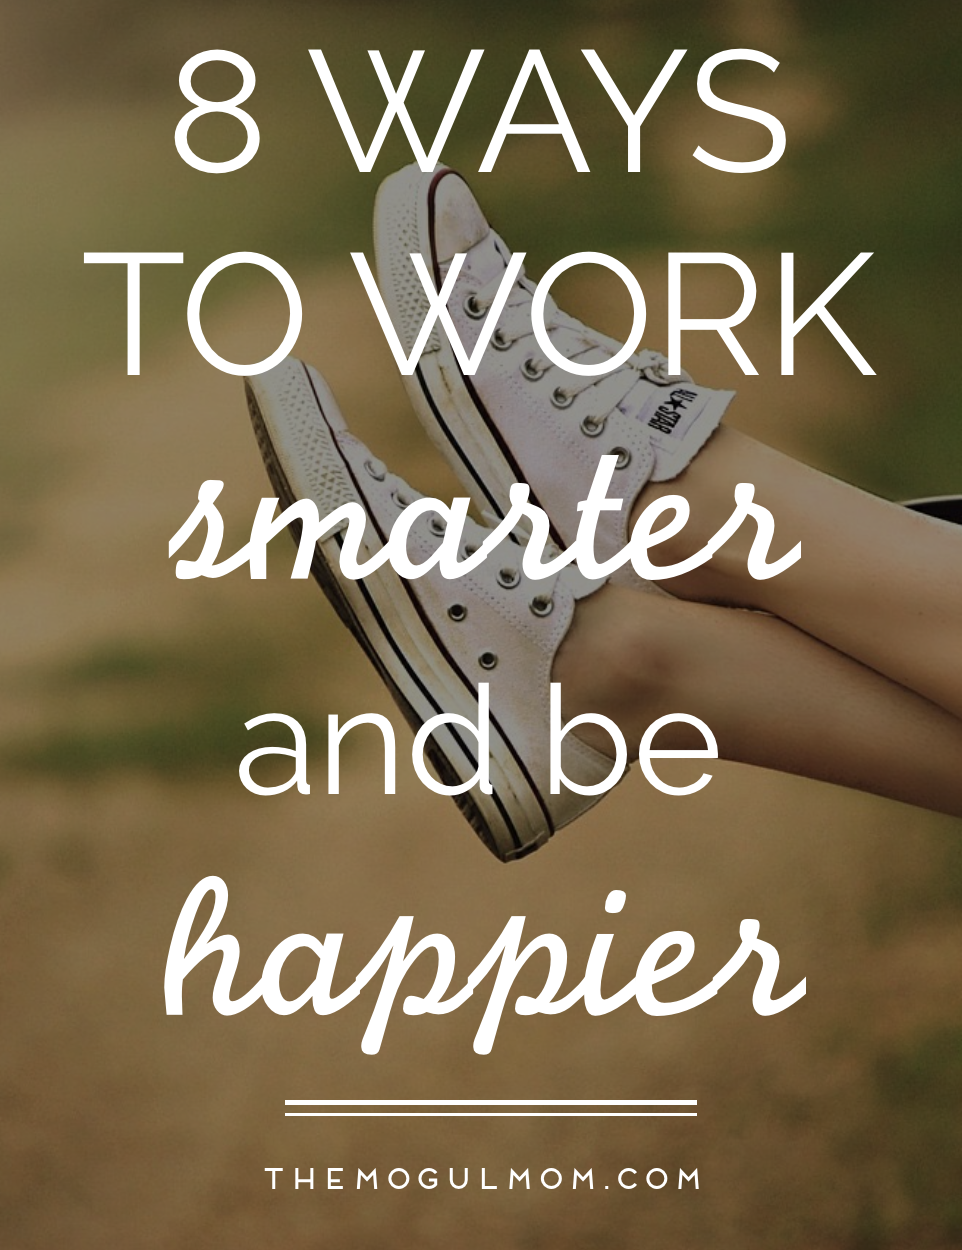 8 Ways To Work Smarter and Be Happier